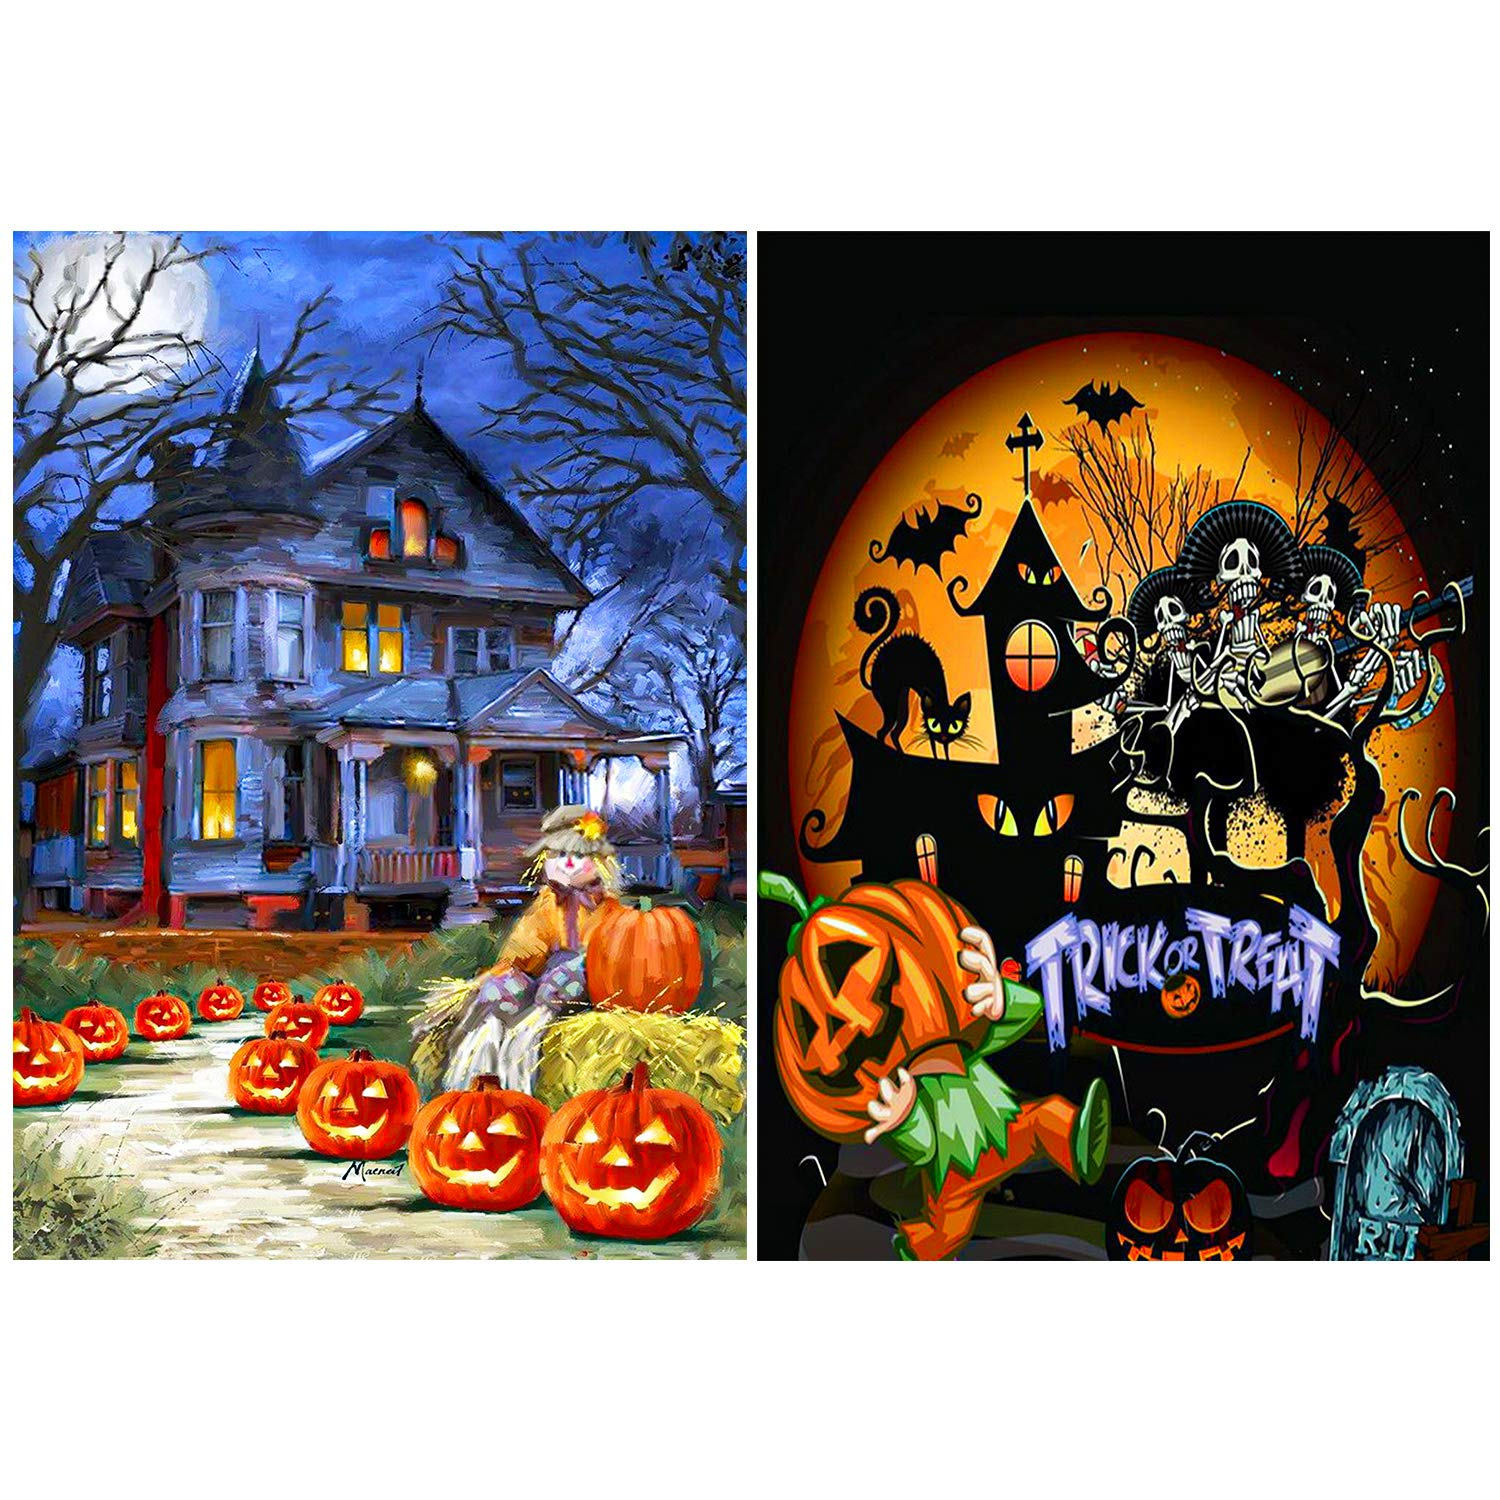 Aneco 2 Pack 5D DIY Diamond Painting Kits Trick or Treat Pumpkin House Full Drill Embroidery Paintings for Halloween Party Decorations by Aneco